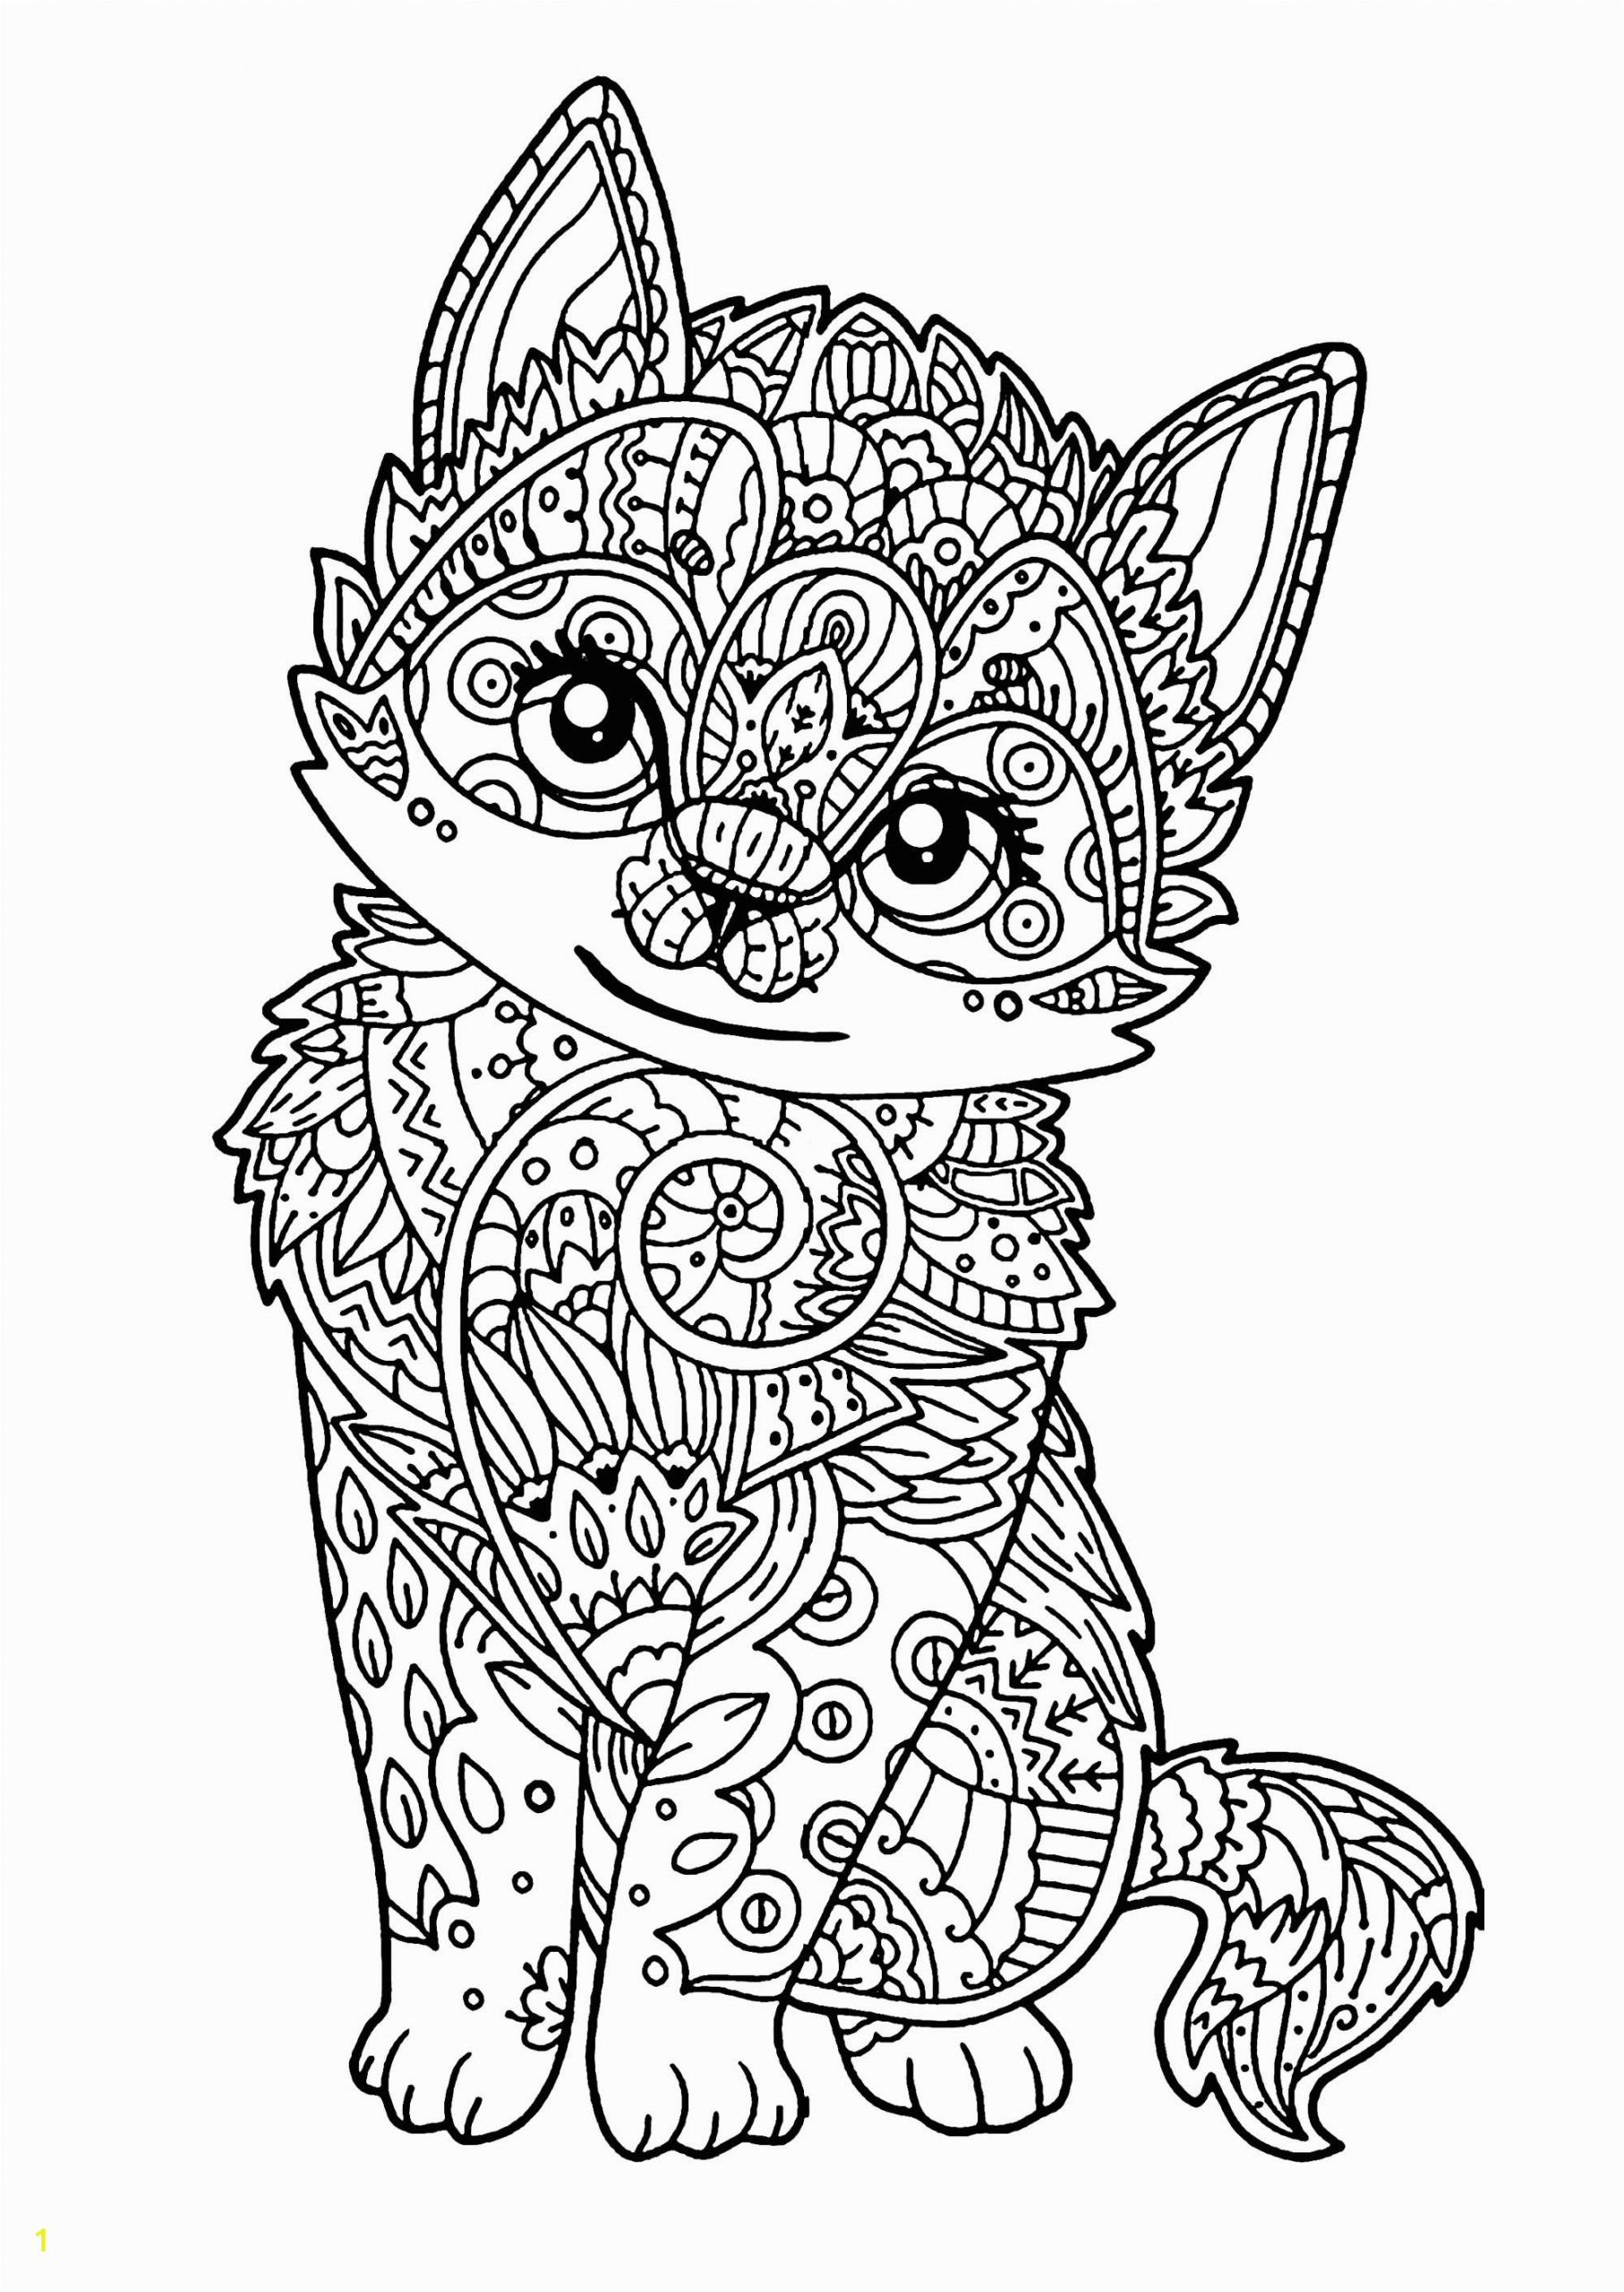 catg pages kitten pusheen black and white unicorn free pete the realistic fox coloring realt printable